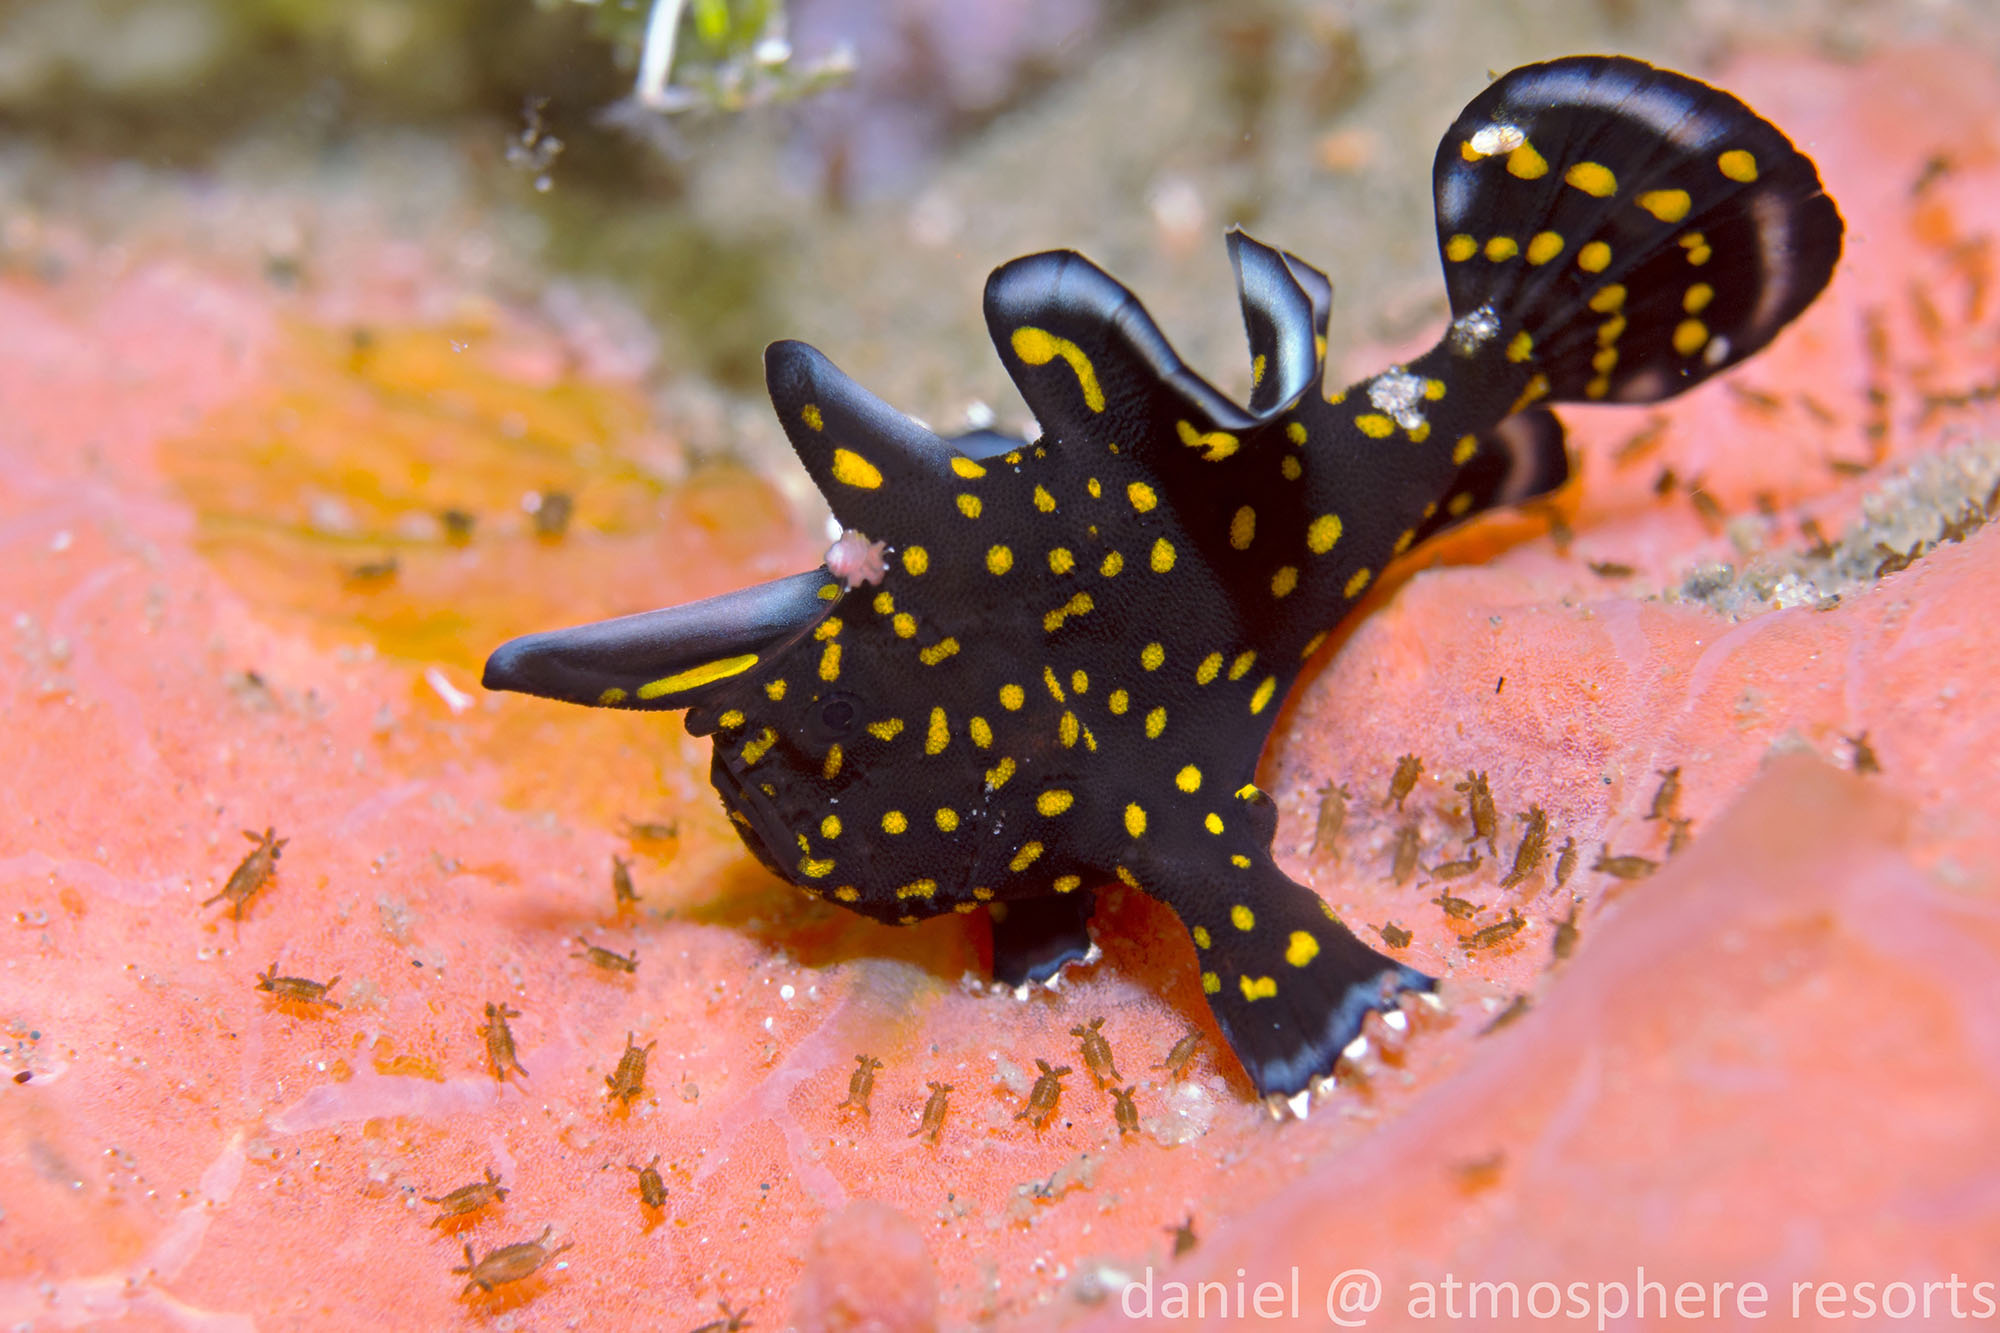 Tattoo frogfish - a painted baby frogfish with a pattern that really stands out at Atmosphere Resort in Dumaguete Philippines. Photo by Daniel Geary